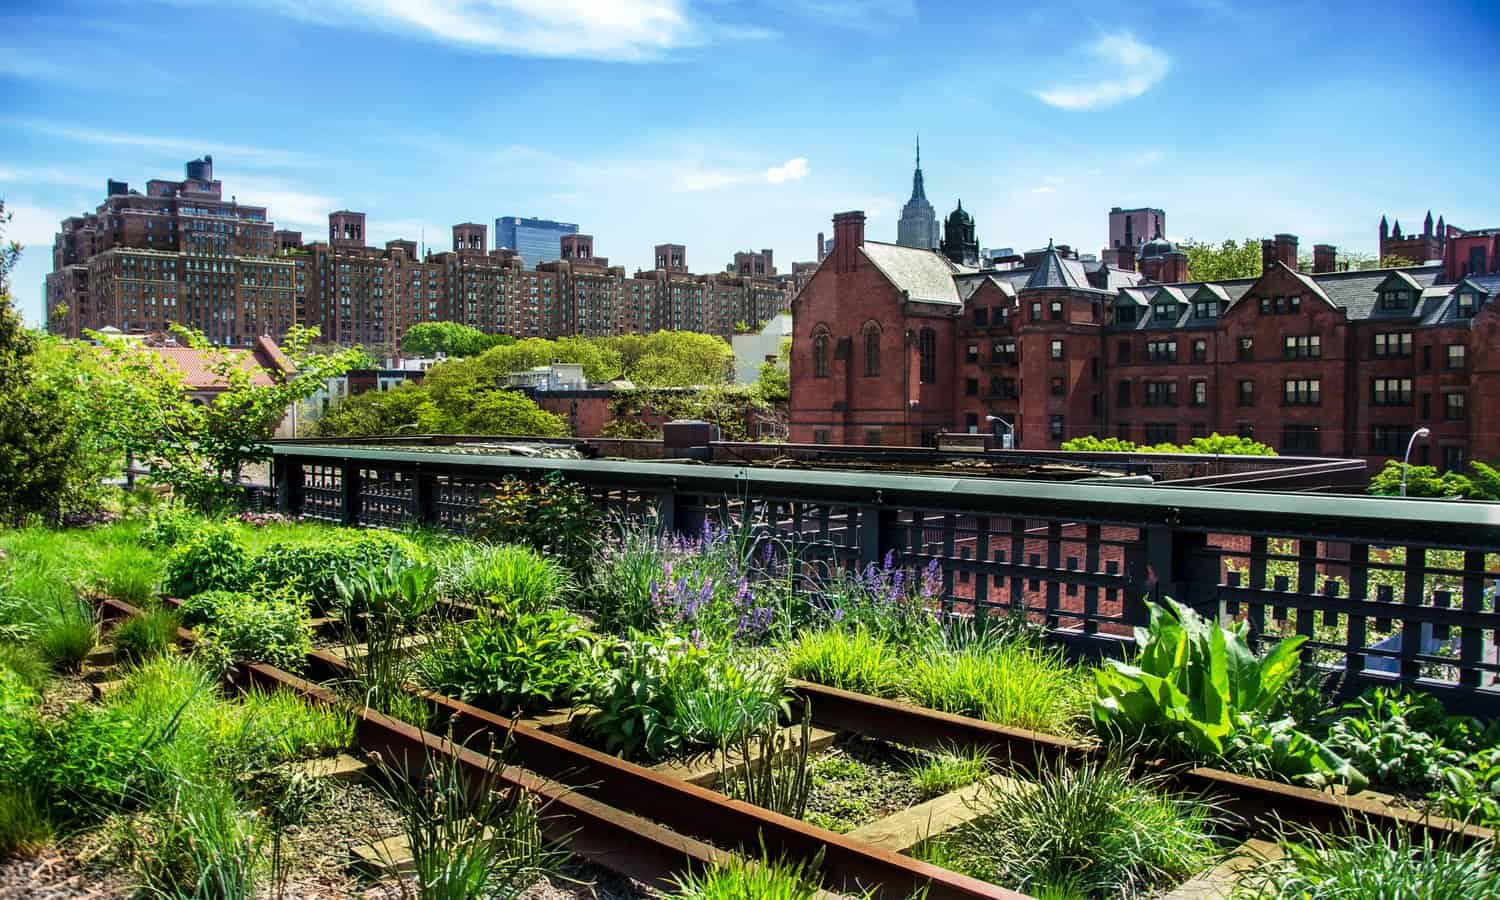 Edible perennials make parks and backyards more beautiful, ecologically resilient, and productive. These 15 organizations are creating edible landscapes around the world.